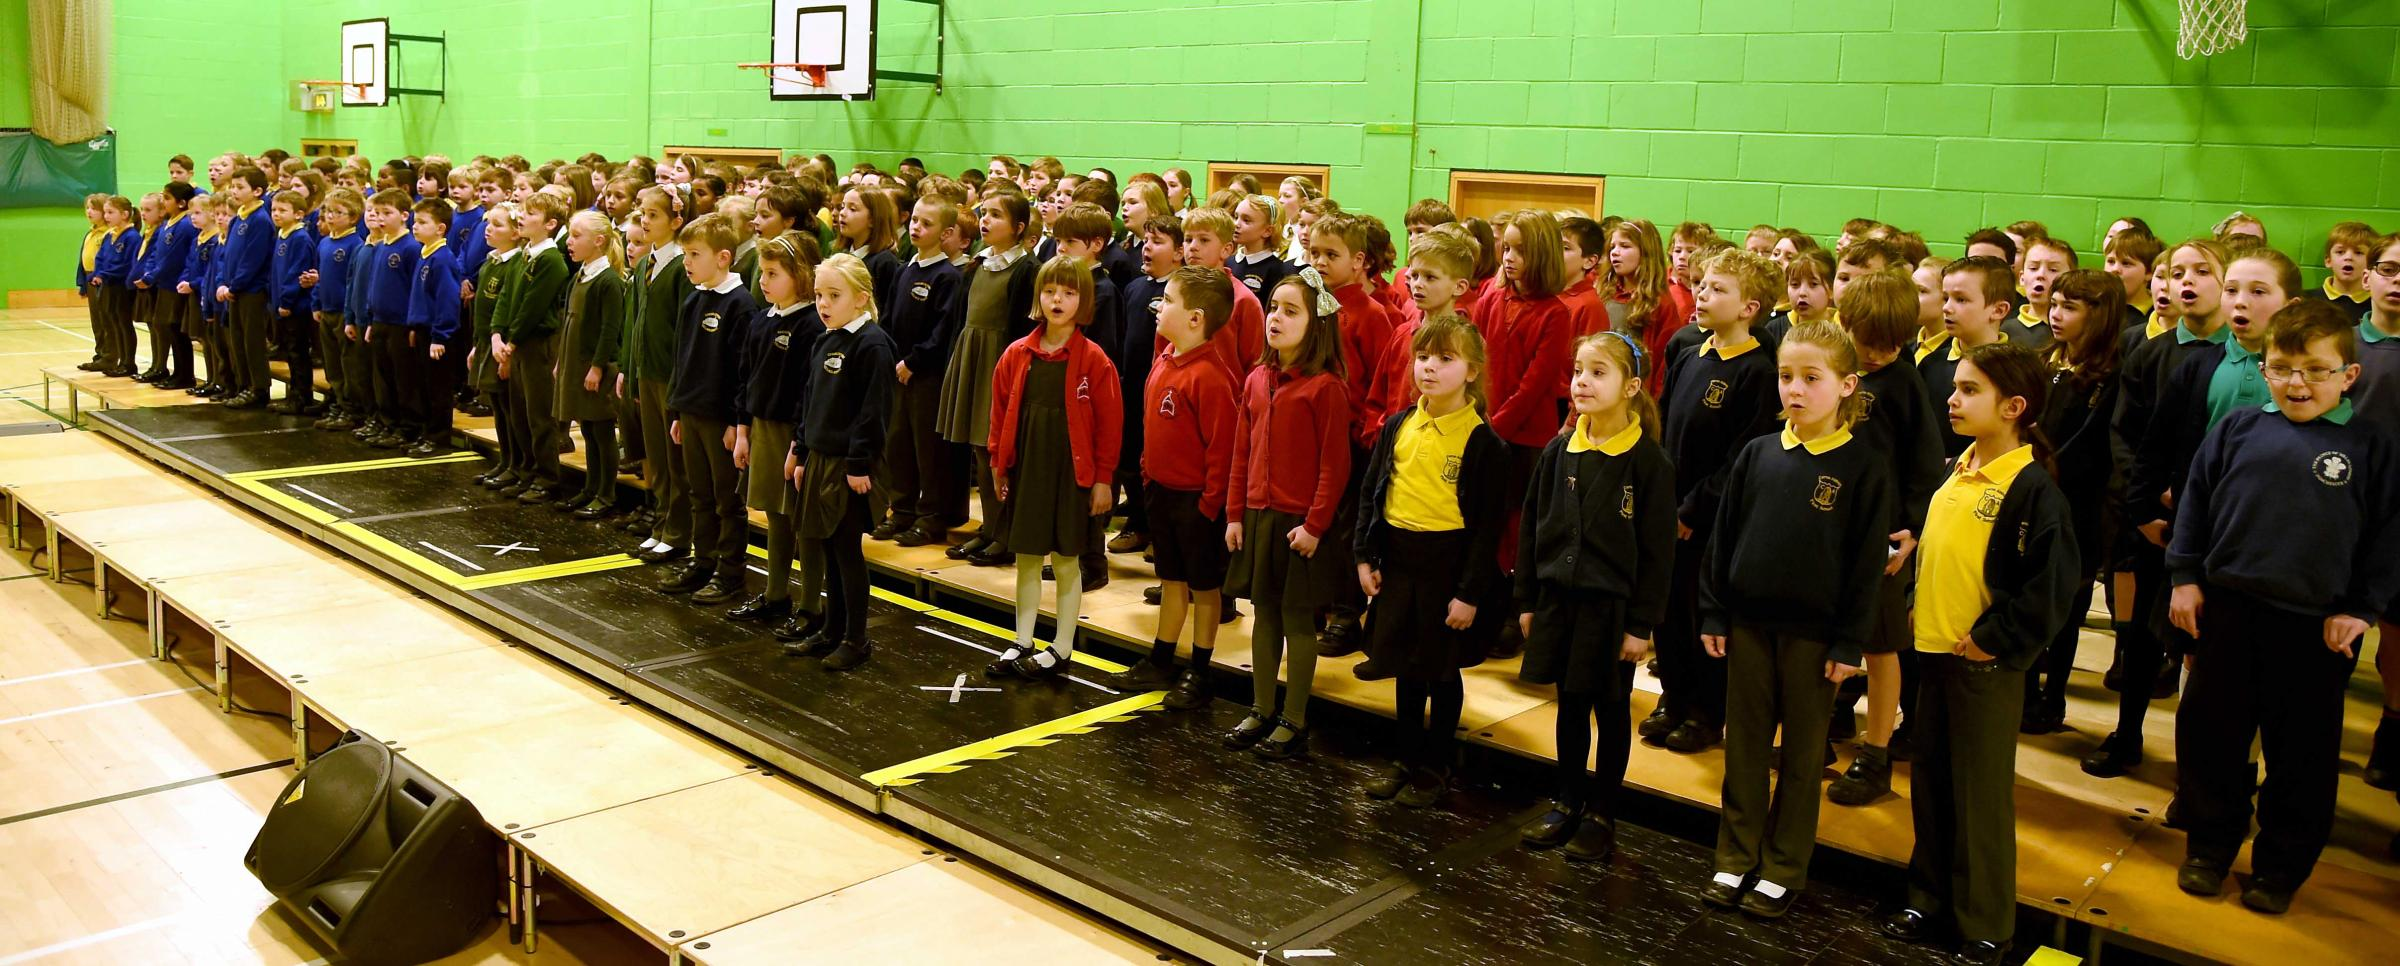 Schools join together for concerts